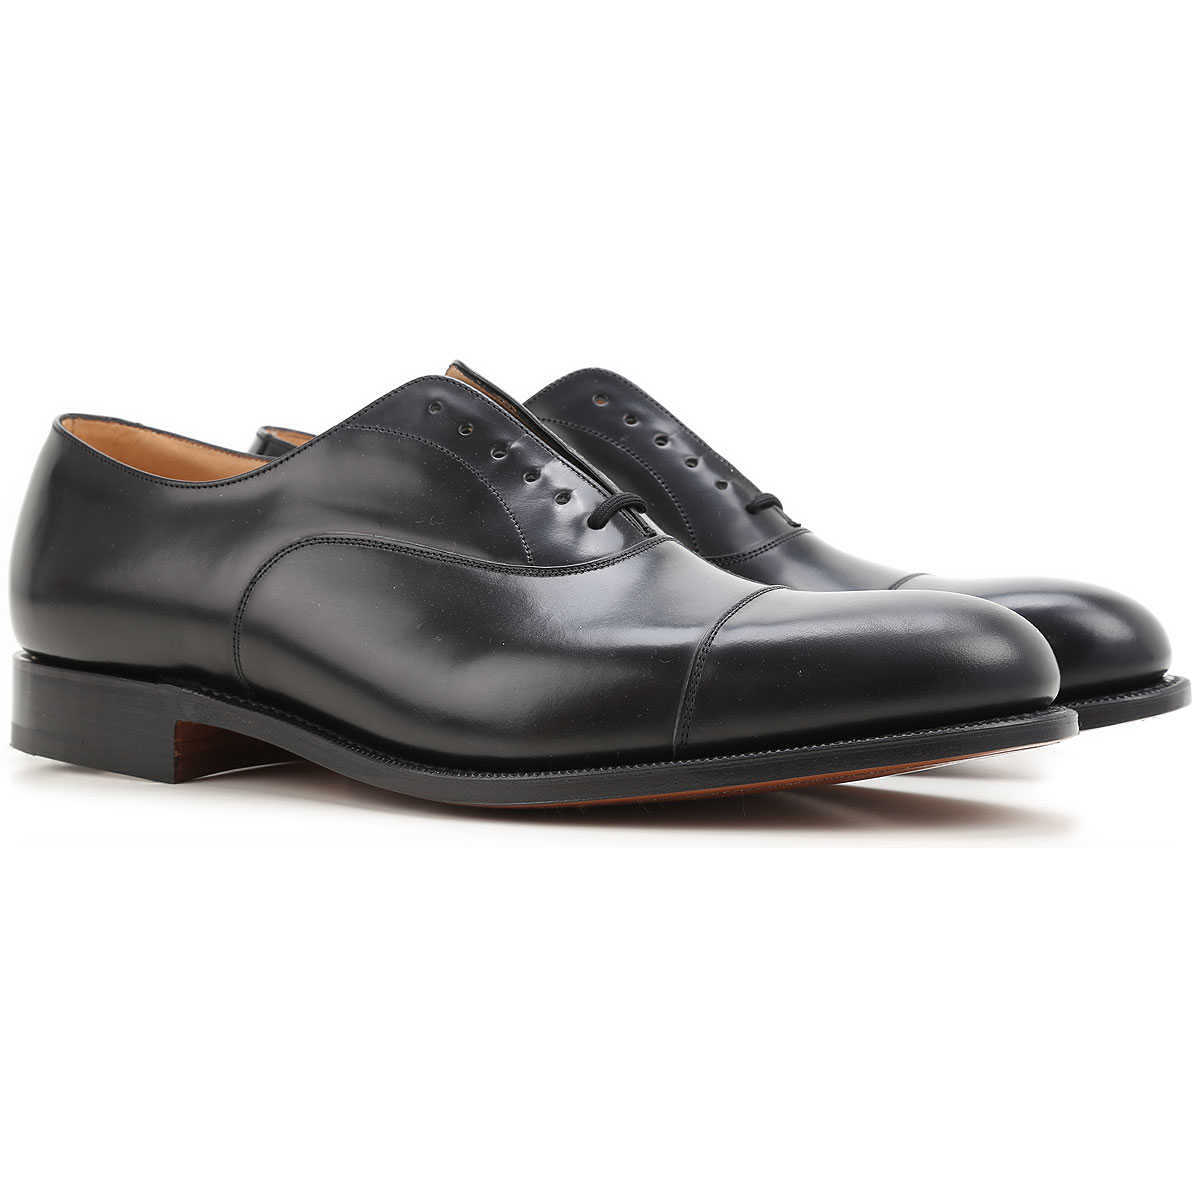 Church's Lace Up Shoes for Men Oxfords2019 Derbies and Brogues UK - GOOFASH